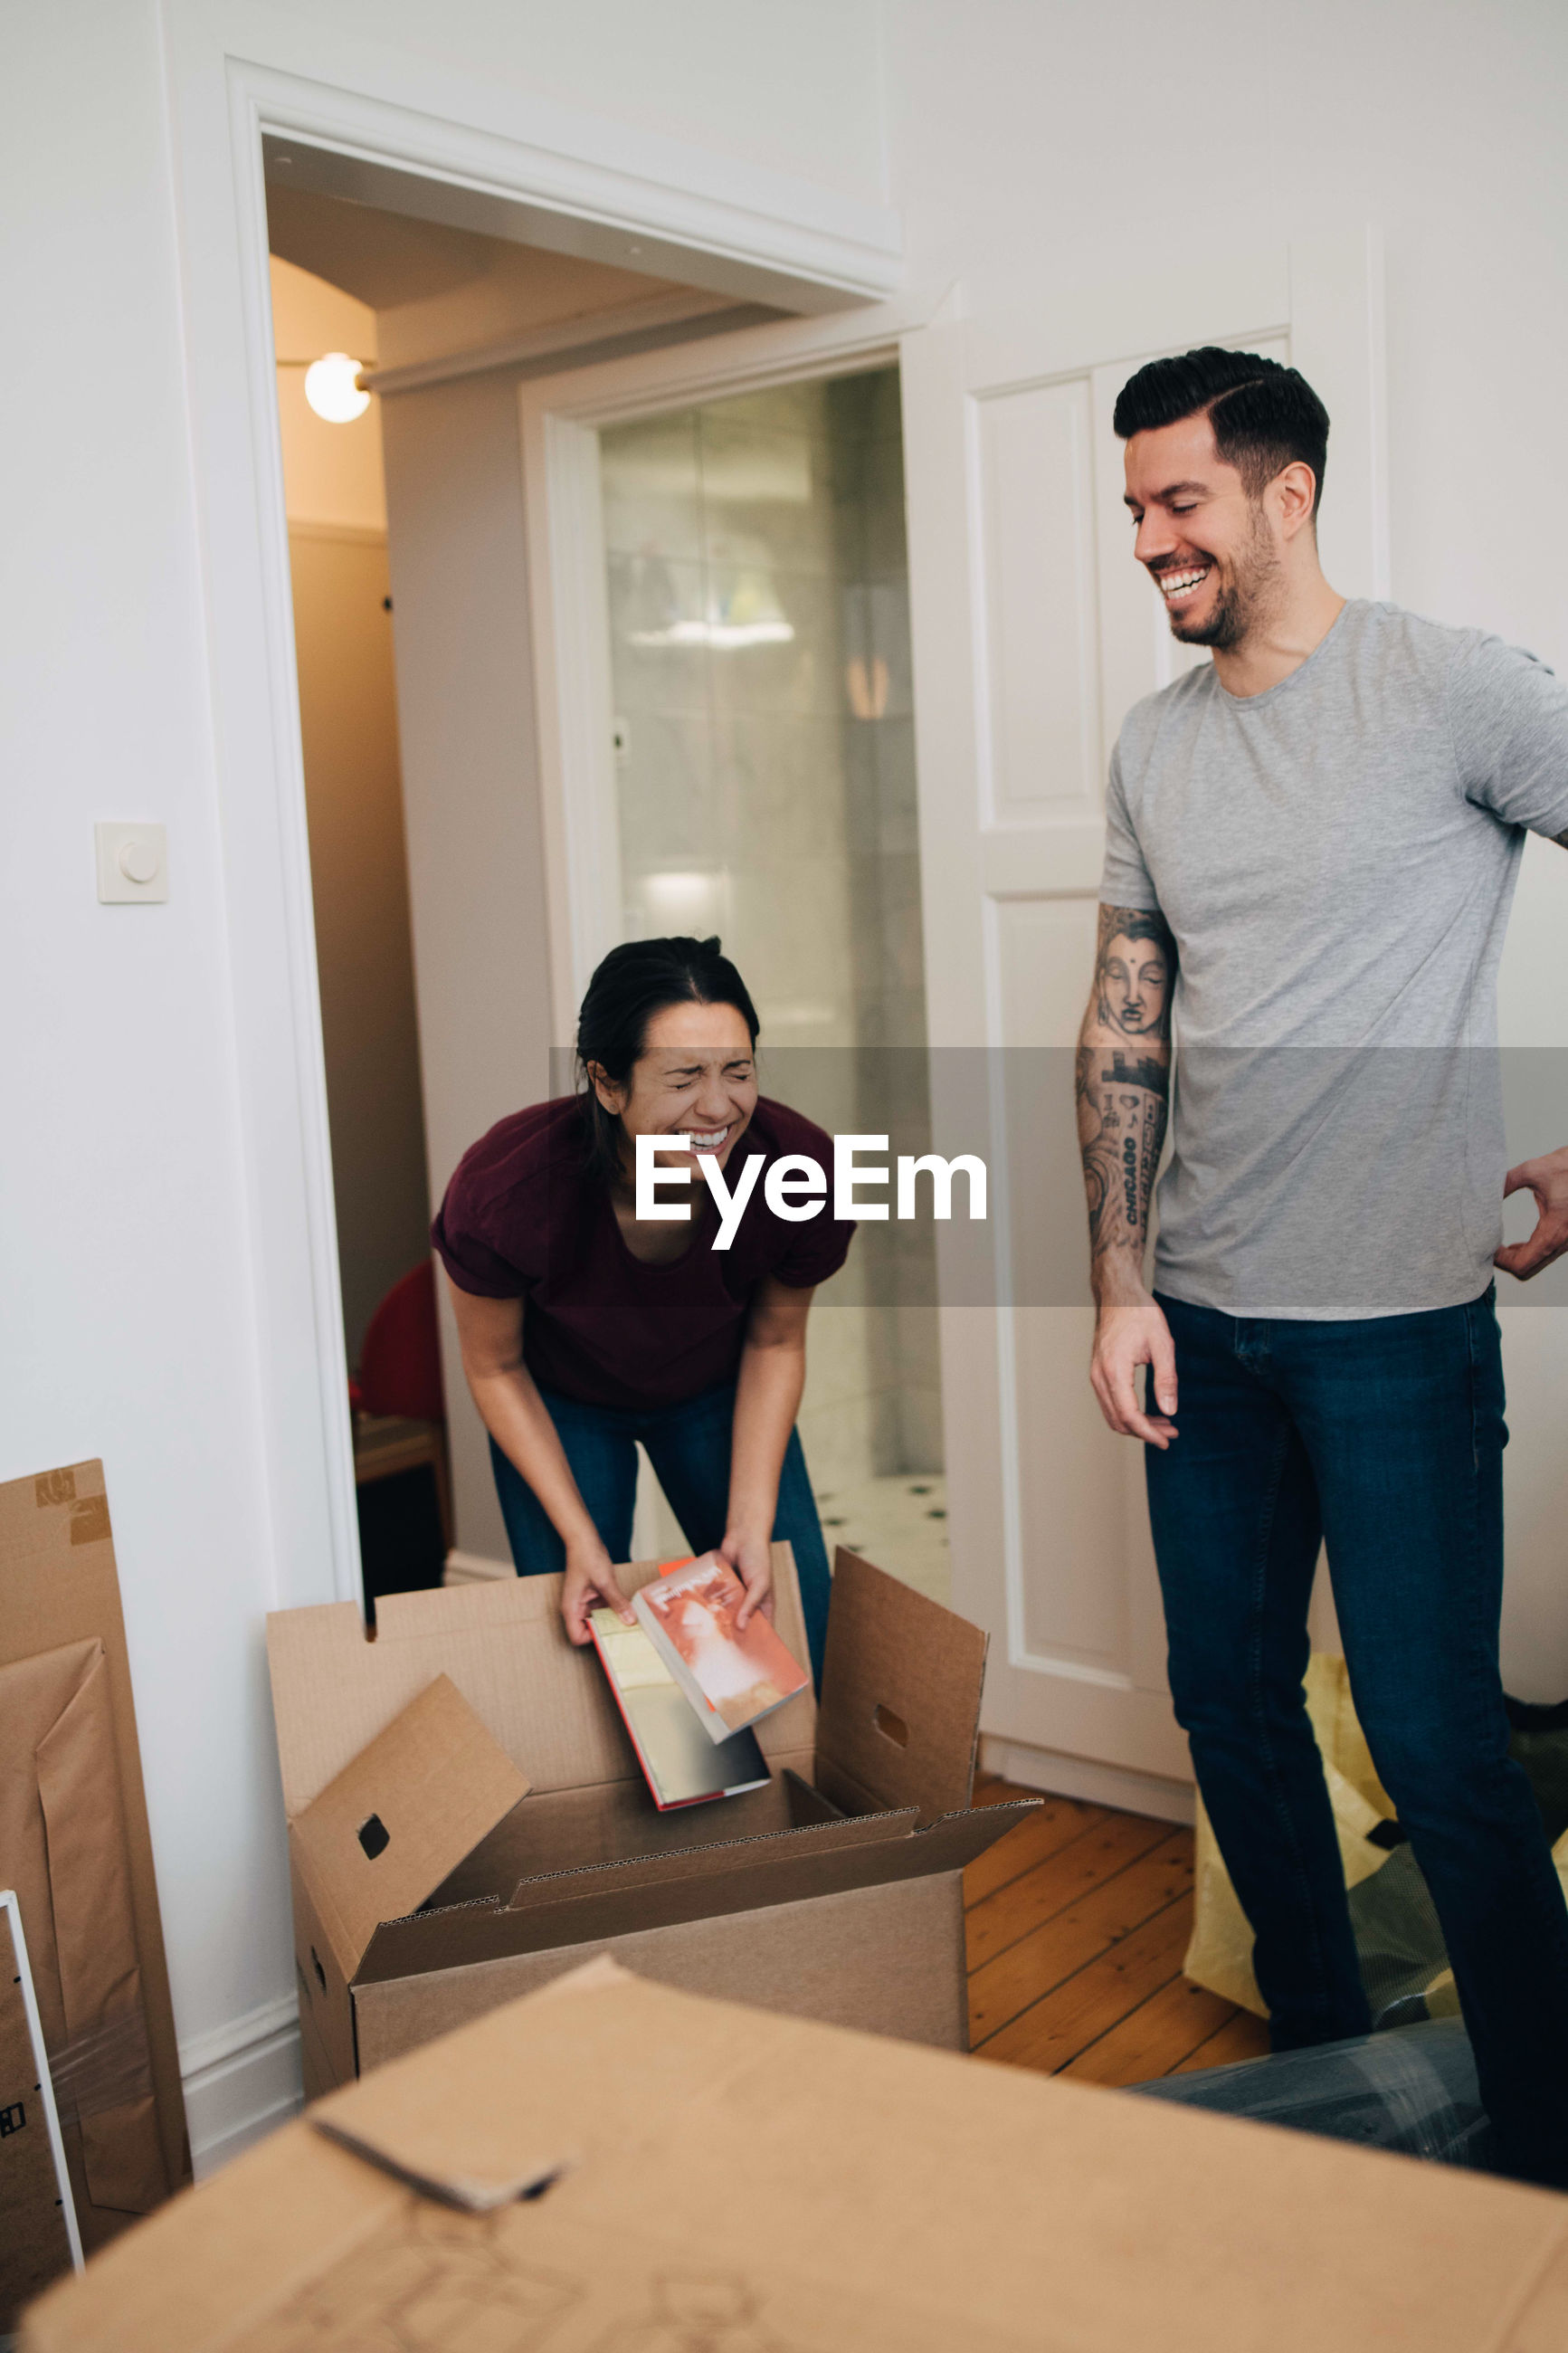 Couple enjoying while unpacking boxes in new apartment